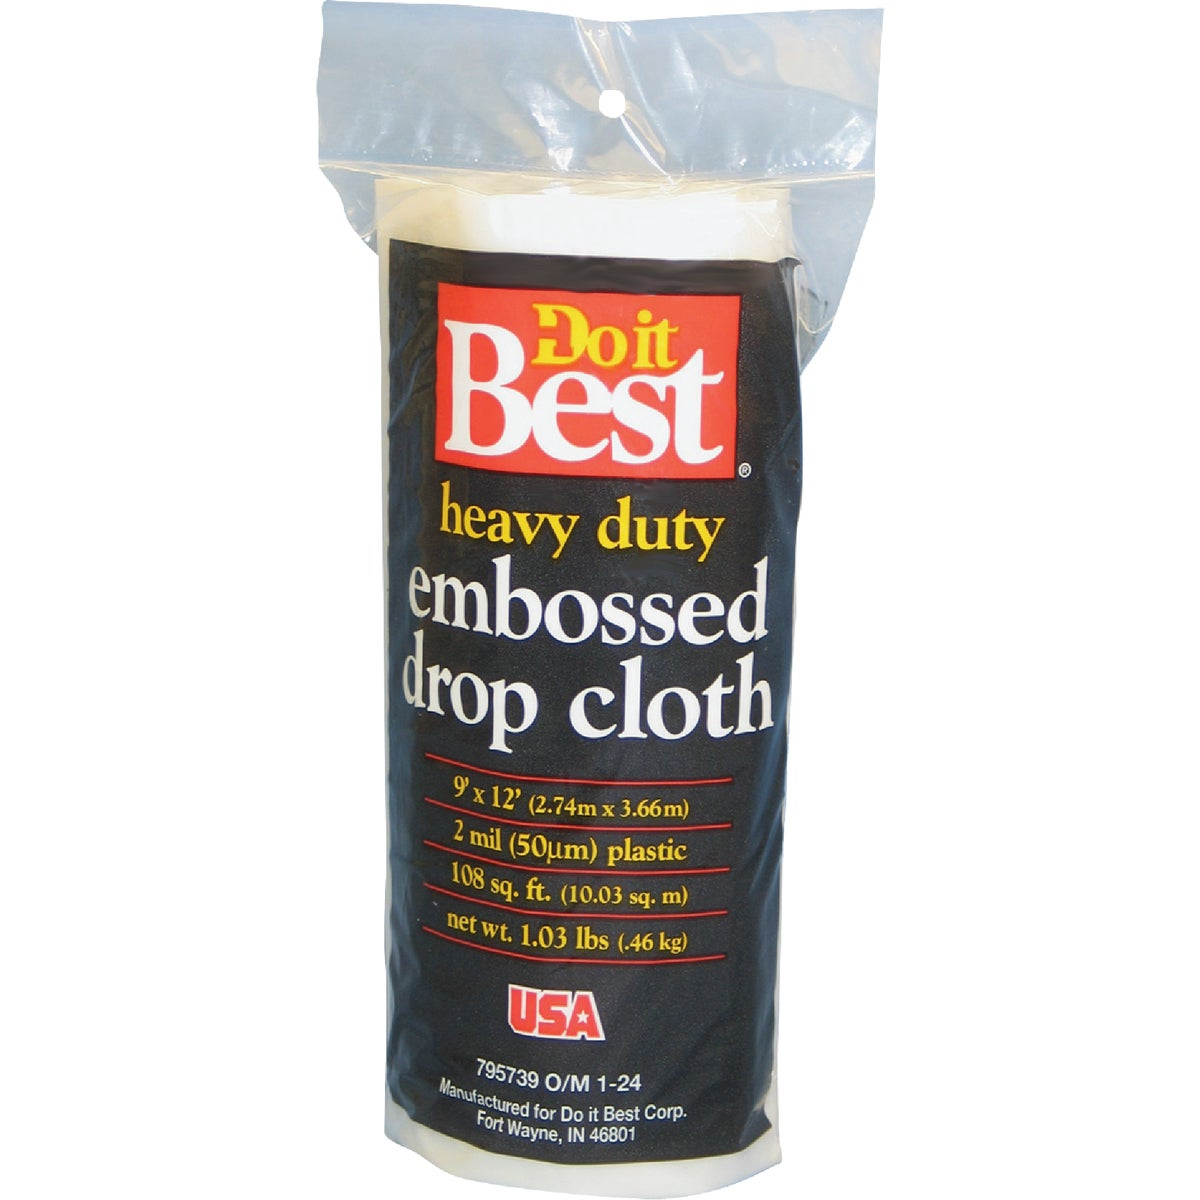 2MIL 9X12 PLS DROP CLOTH - 626233 by Berry Plastics